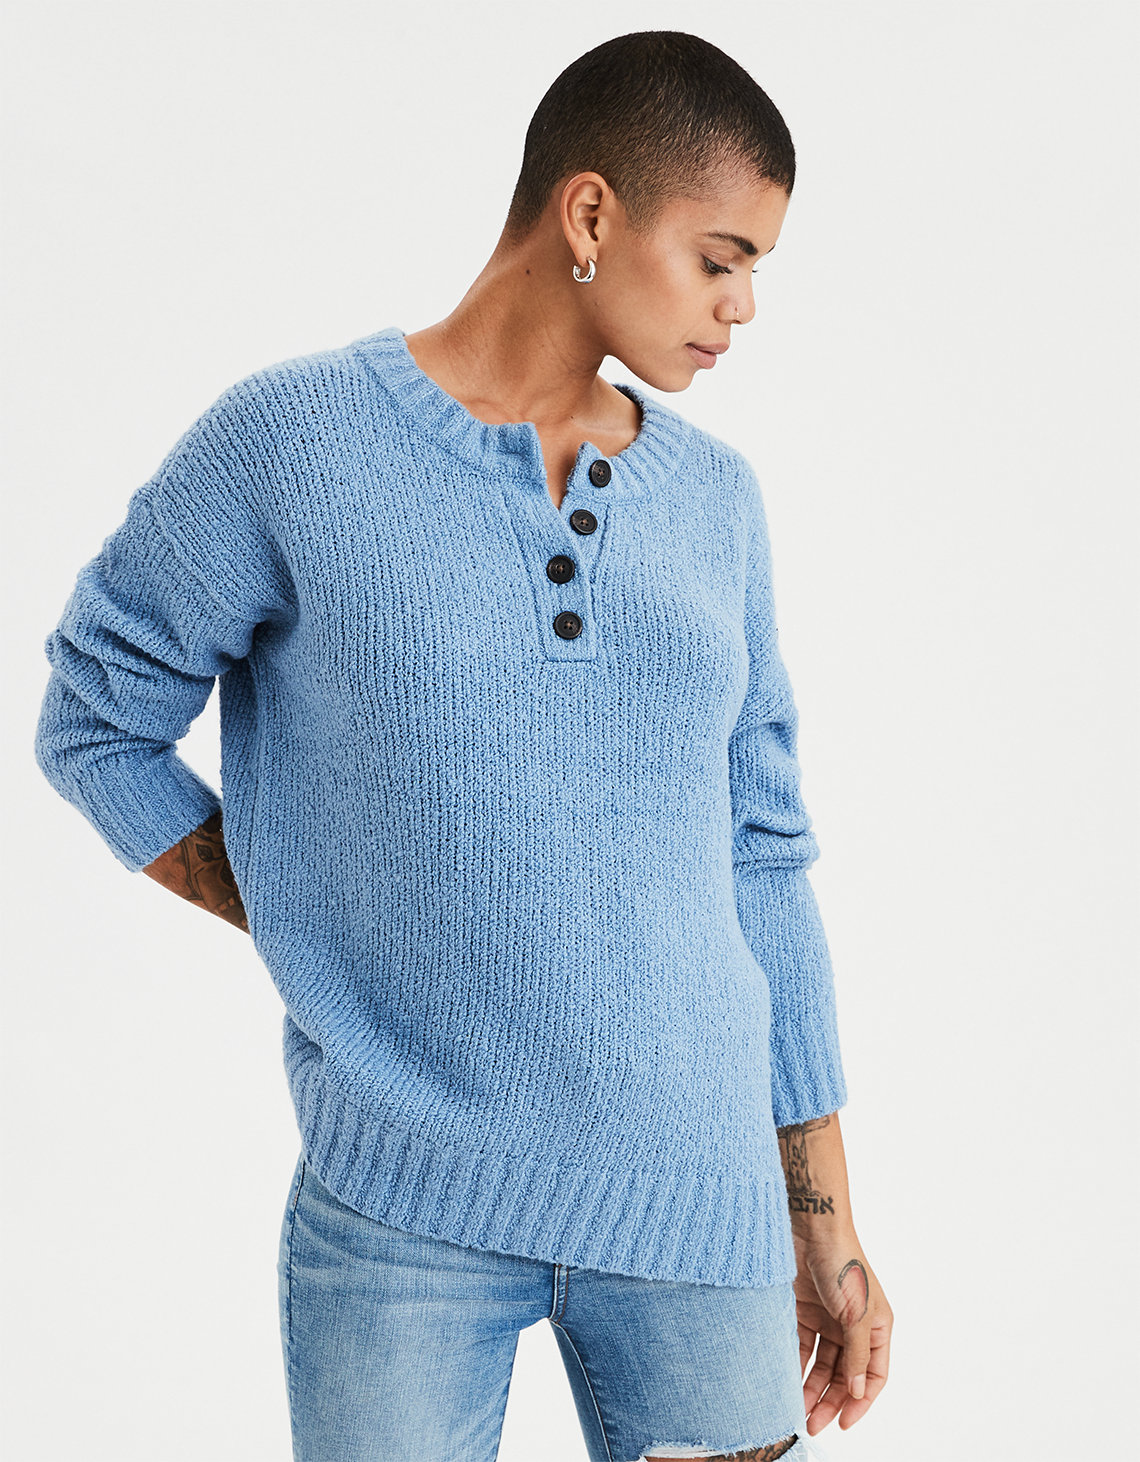 1549b69d4bf AE Henley Pullover Sweater. Placeholder image. Product Image